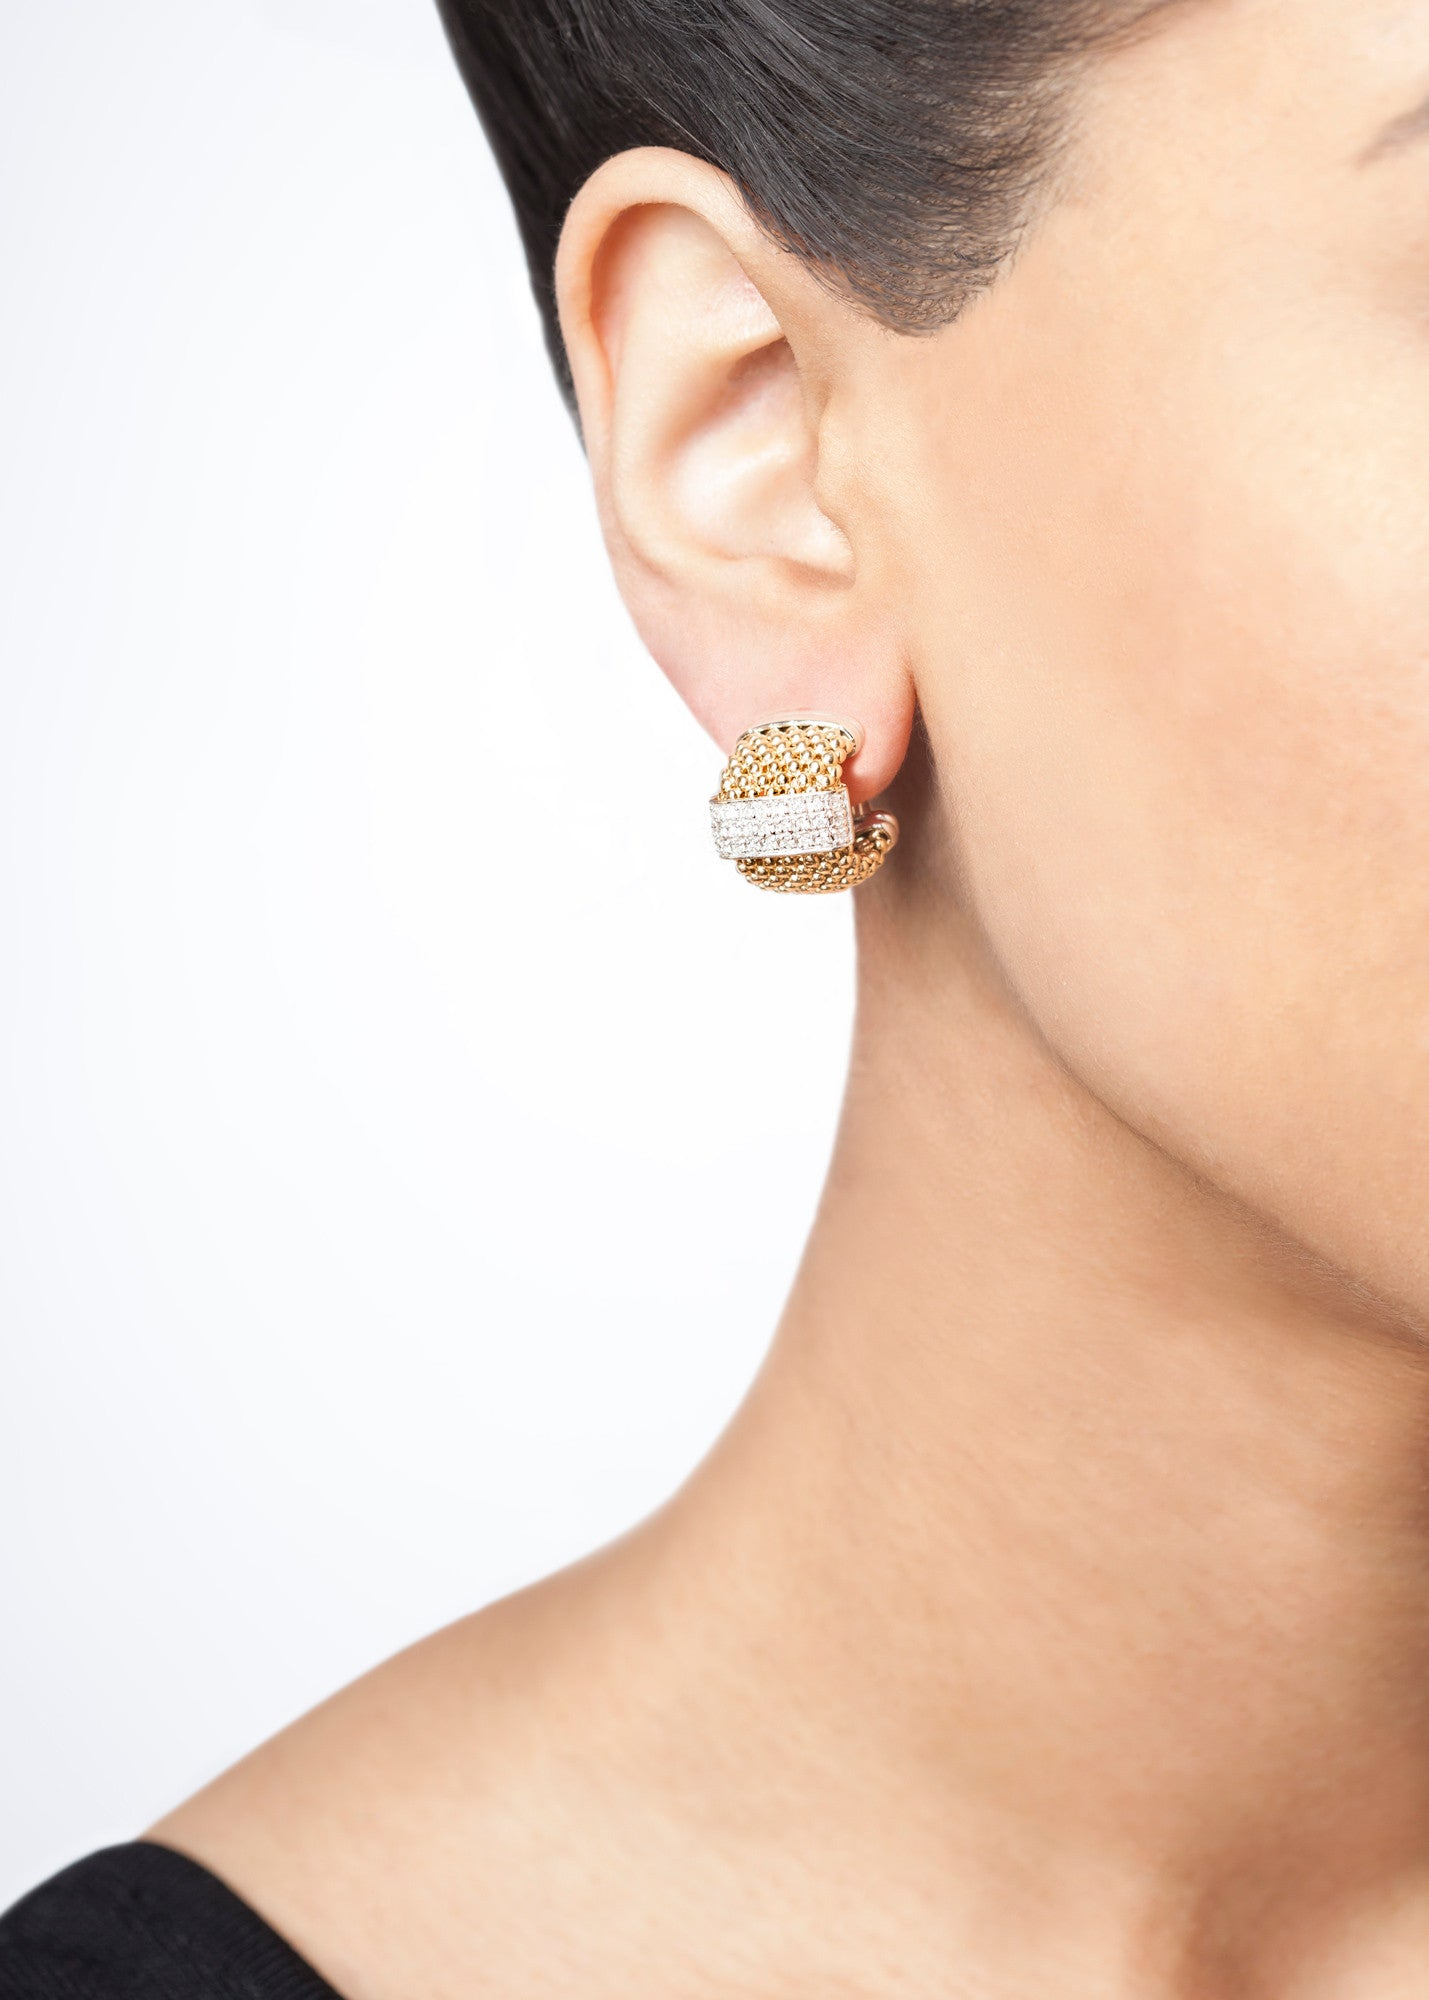 Mesh Gold & Pavé Diamond Earrings-30% OFF!